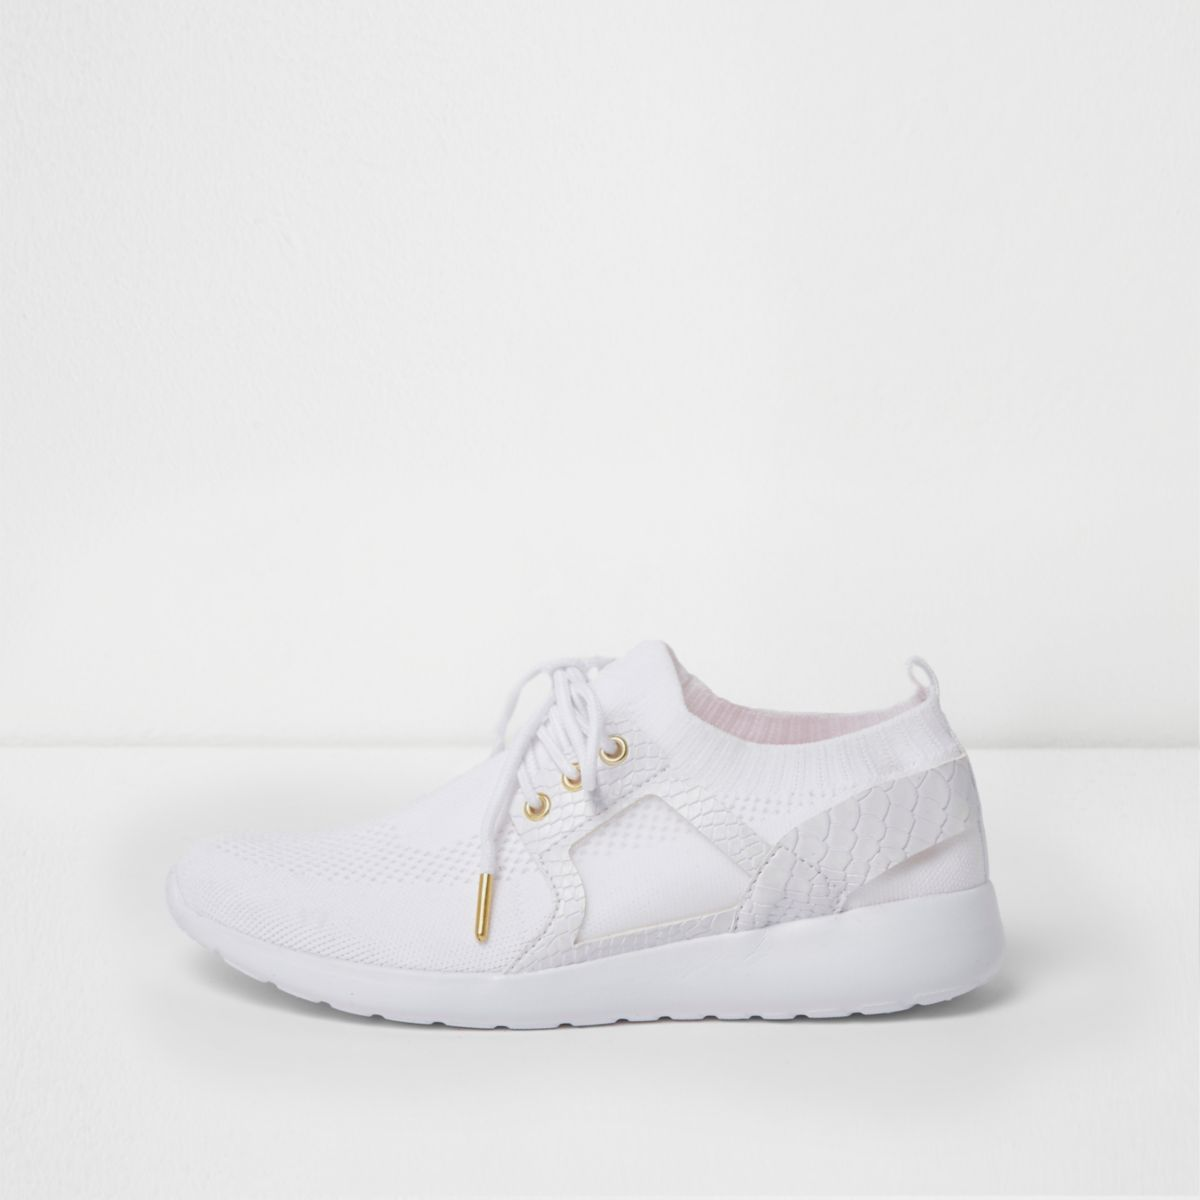 White mesh knit lace-up runner trainers